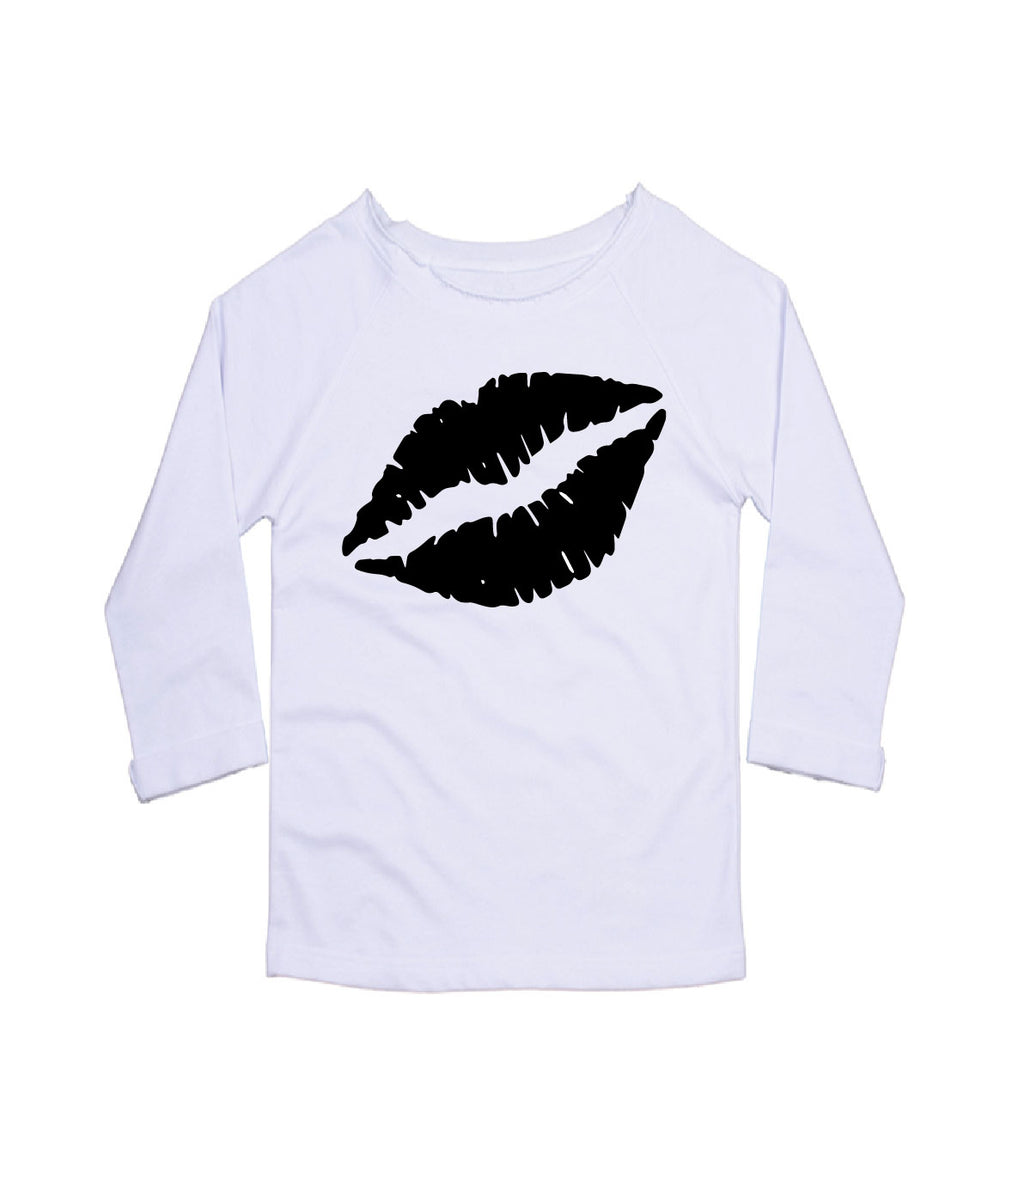 Gem Lips Scoop Neck Sweatshirt Black Lips - Available in White Sweatshirt